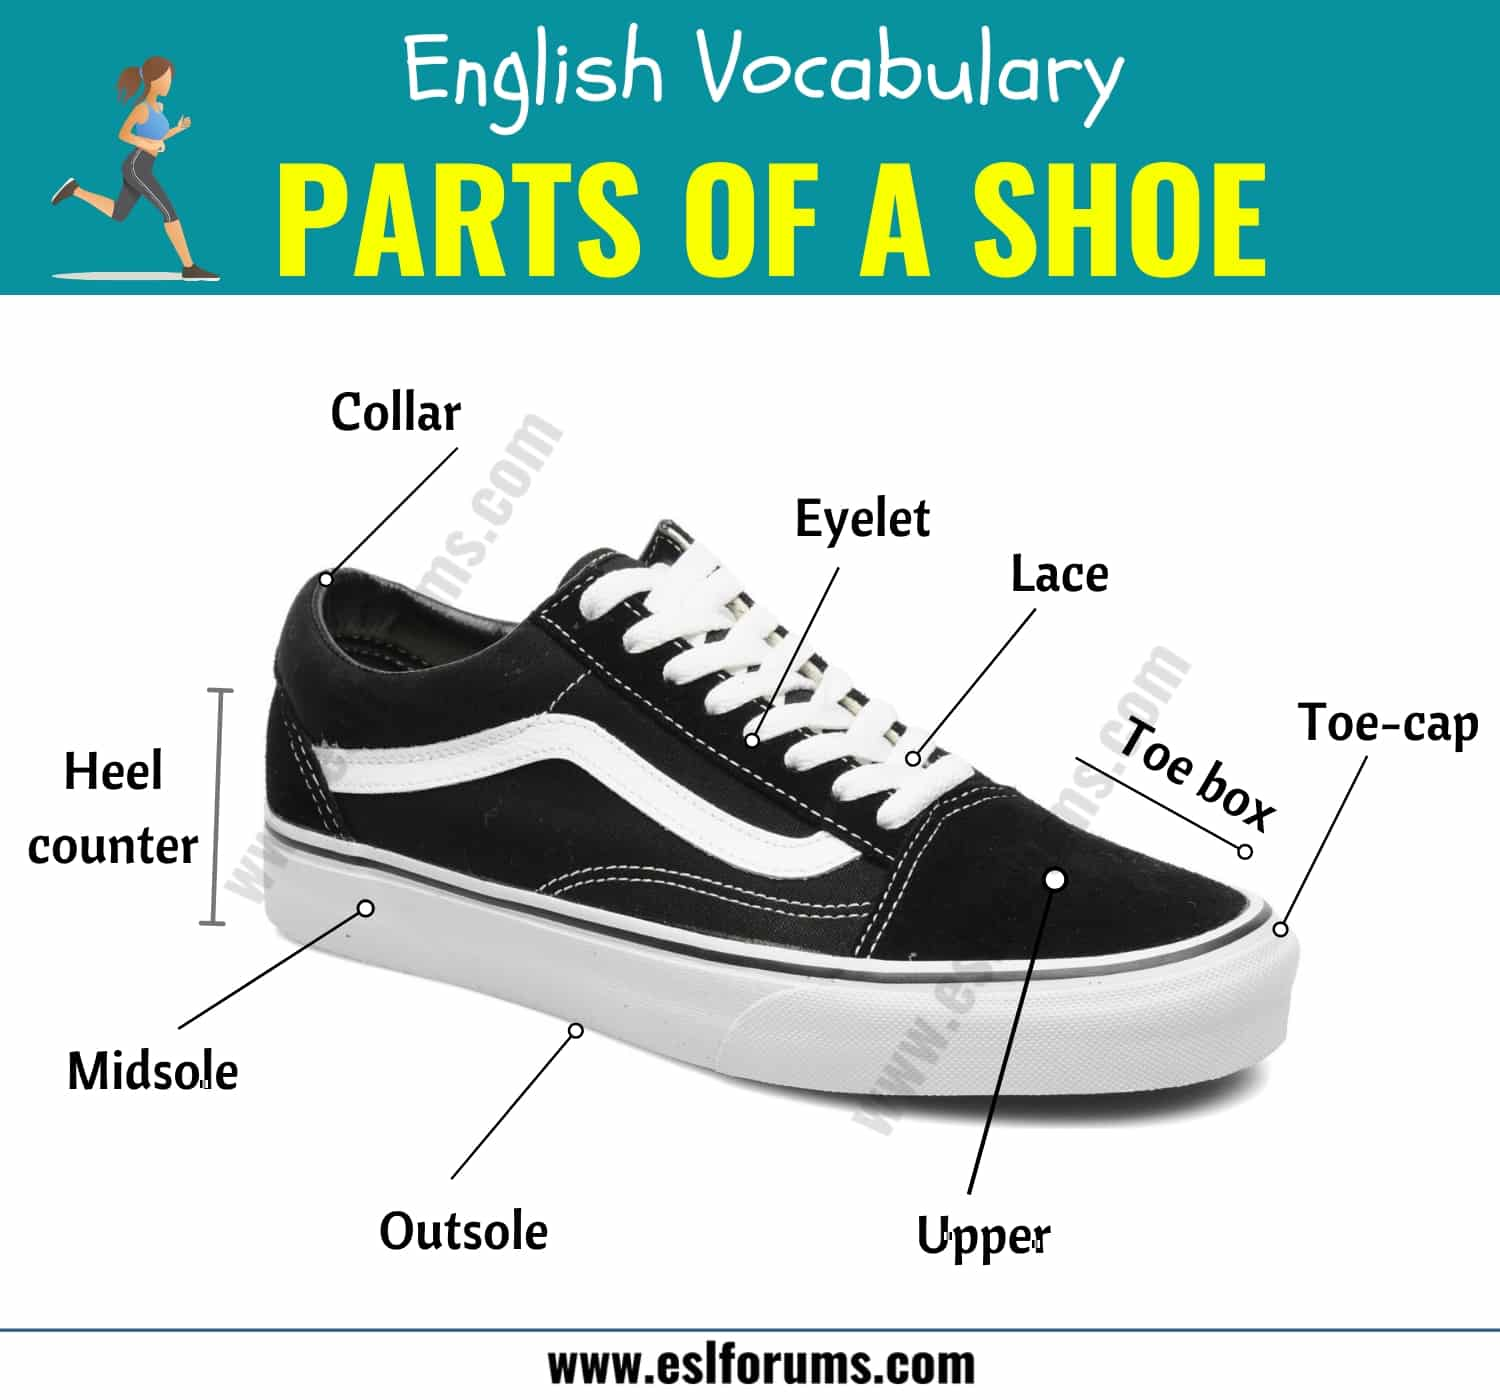 Parts of A Shoe: Different Parts of a Shoe with ESL Picture!